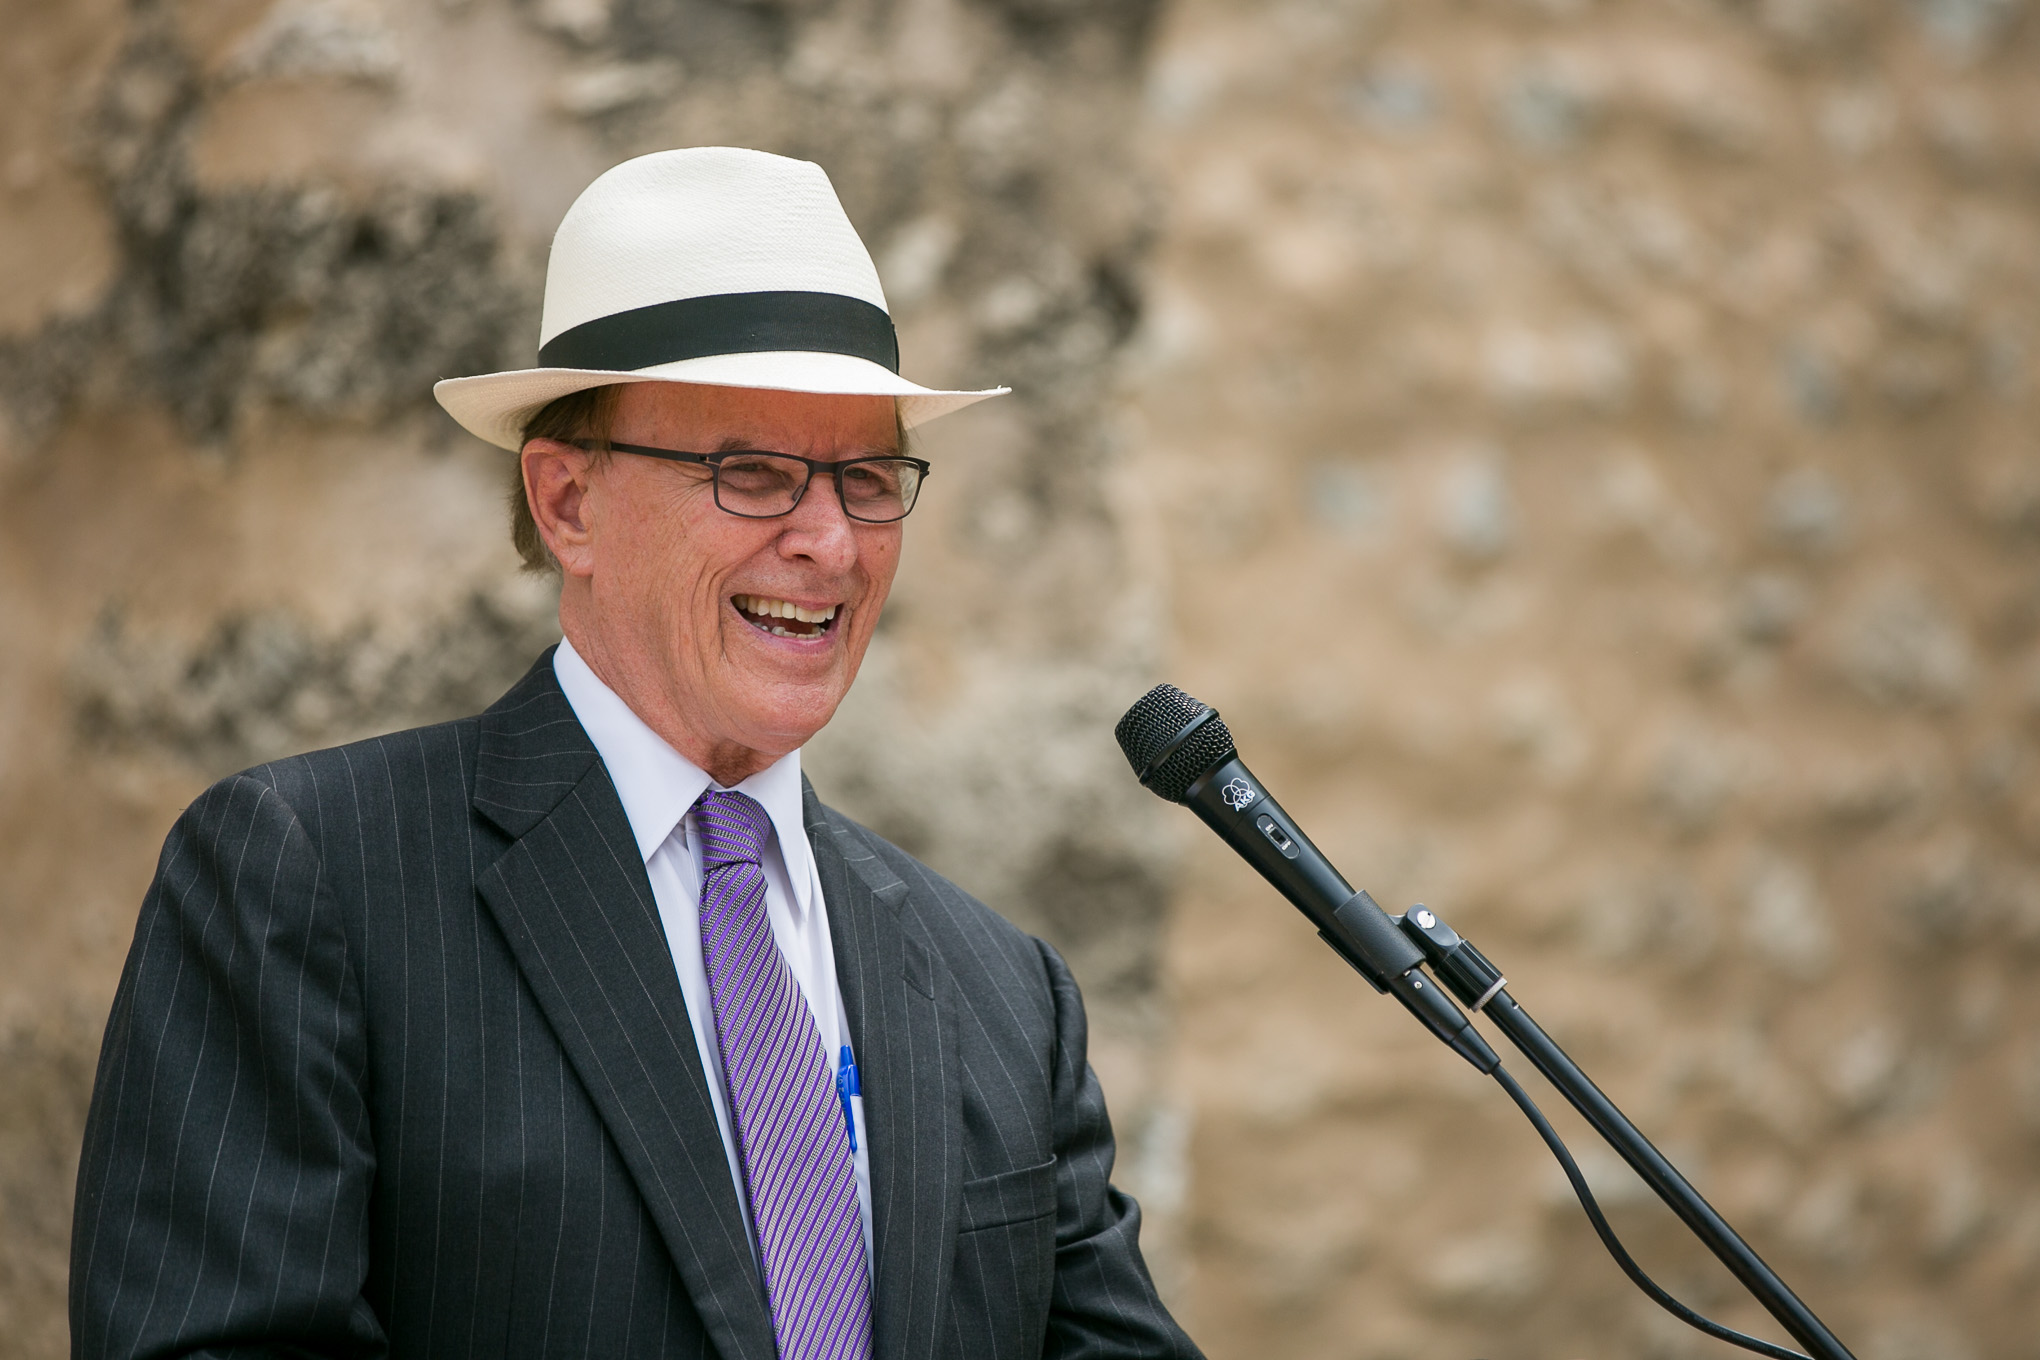 Bexar County Judge Nelson Wolff makes a joke about being able to vote more than once. Photo by Kathryn Boyd-Batstone